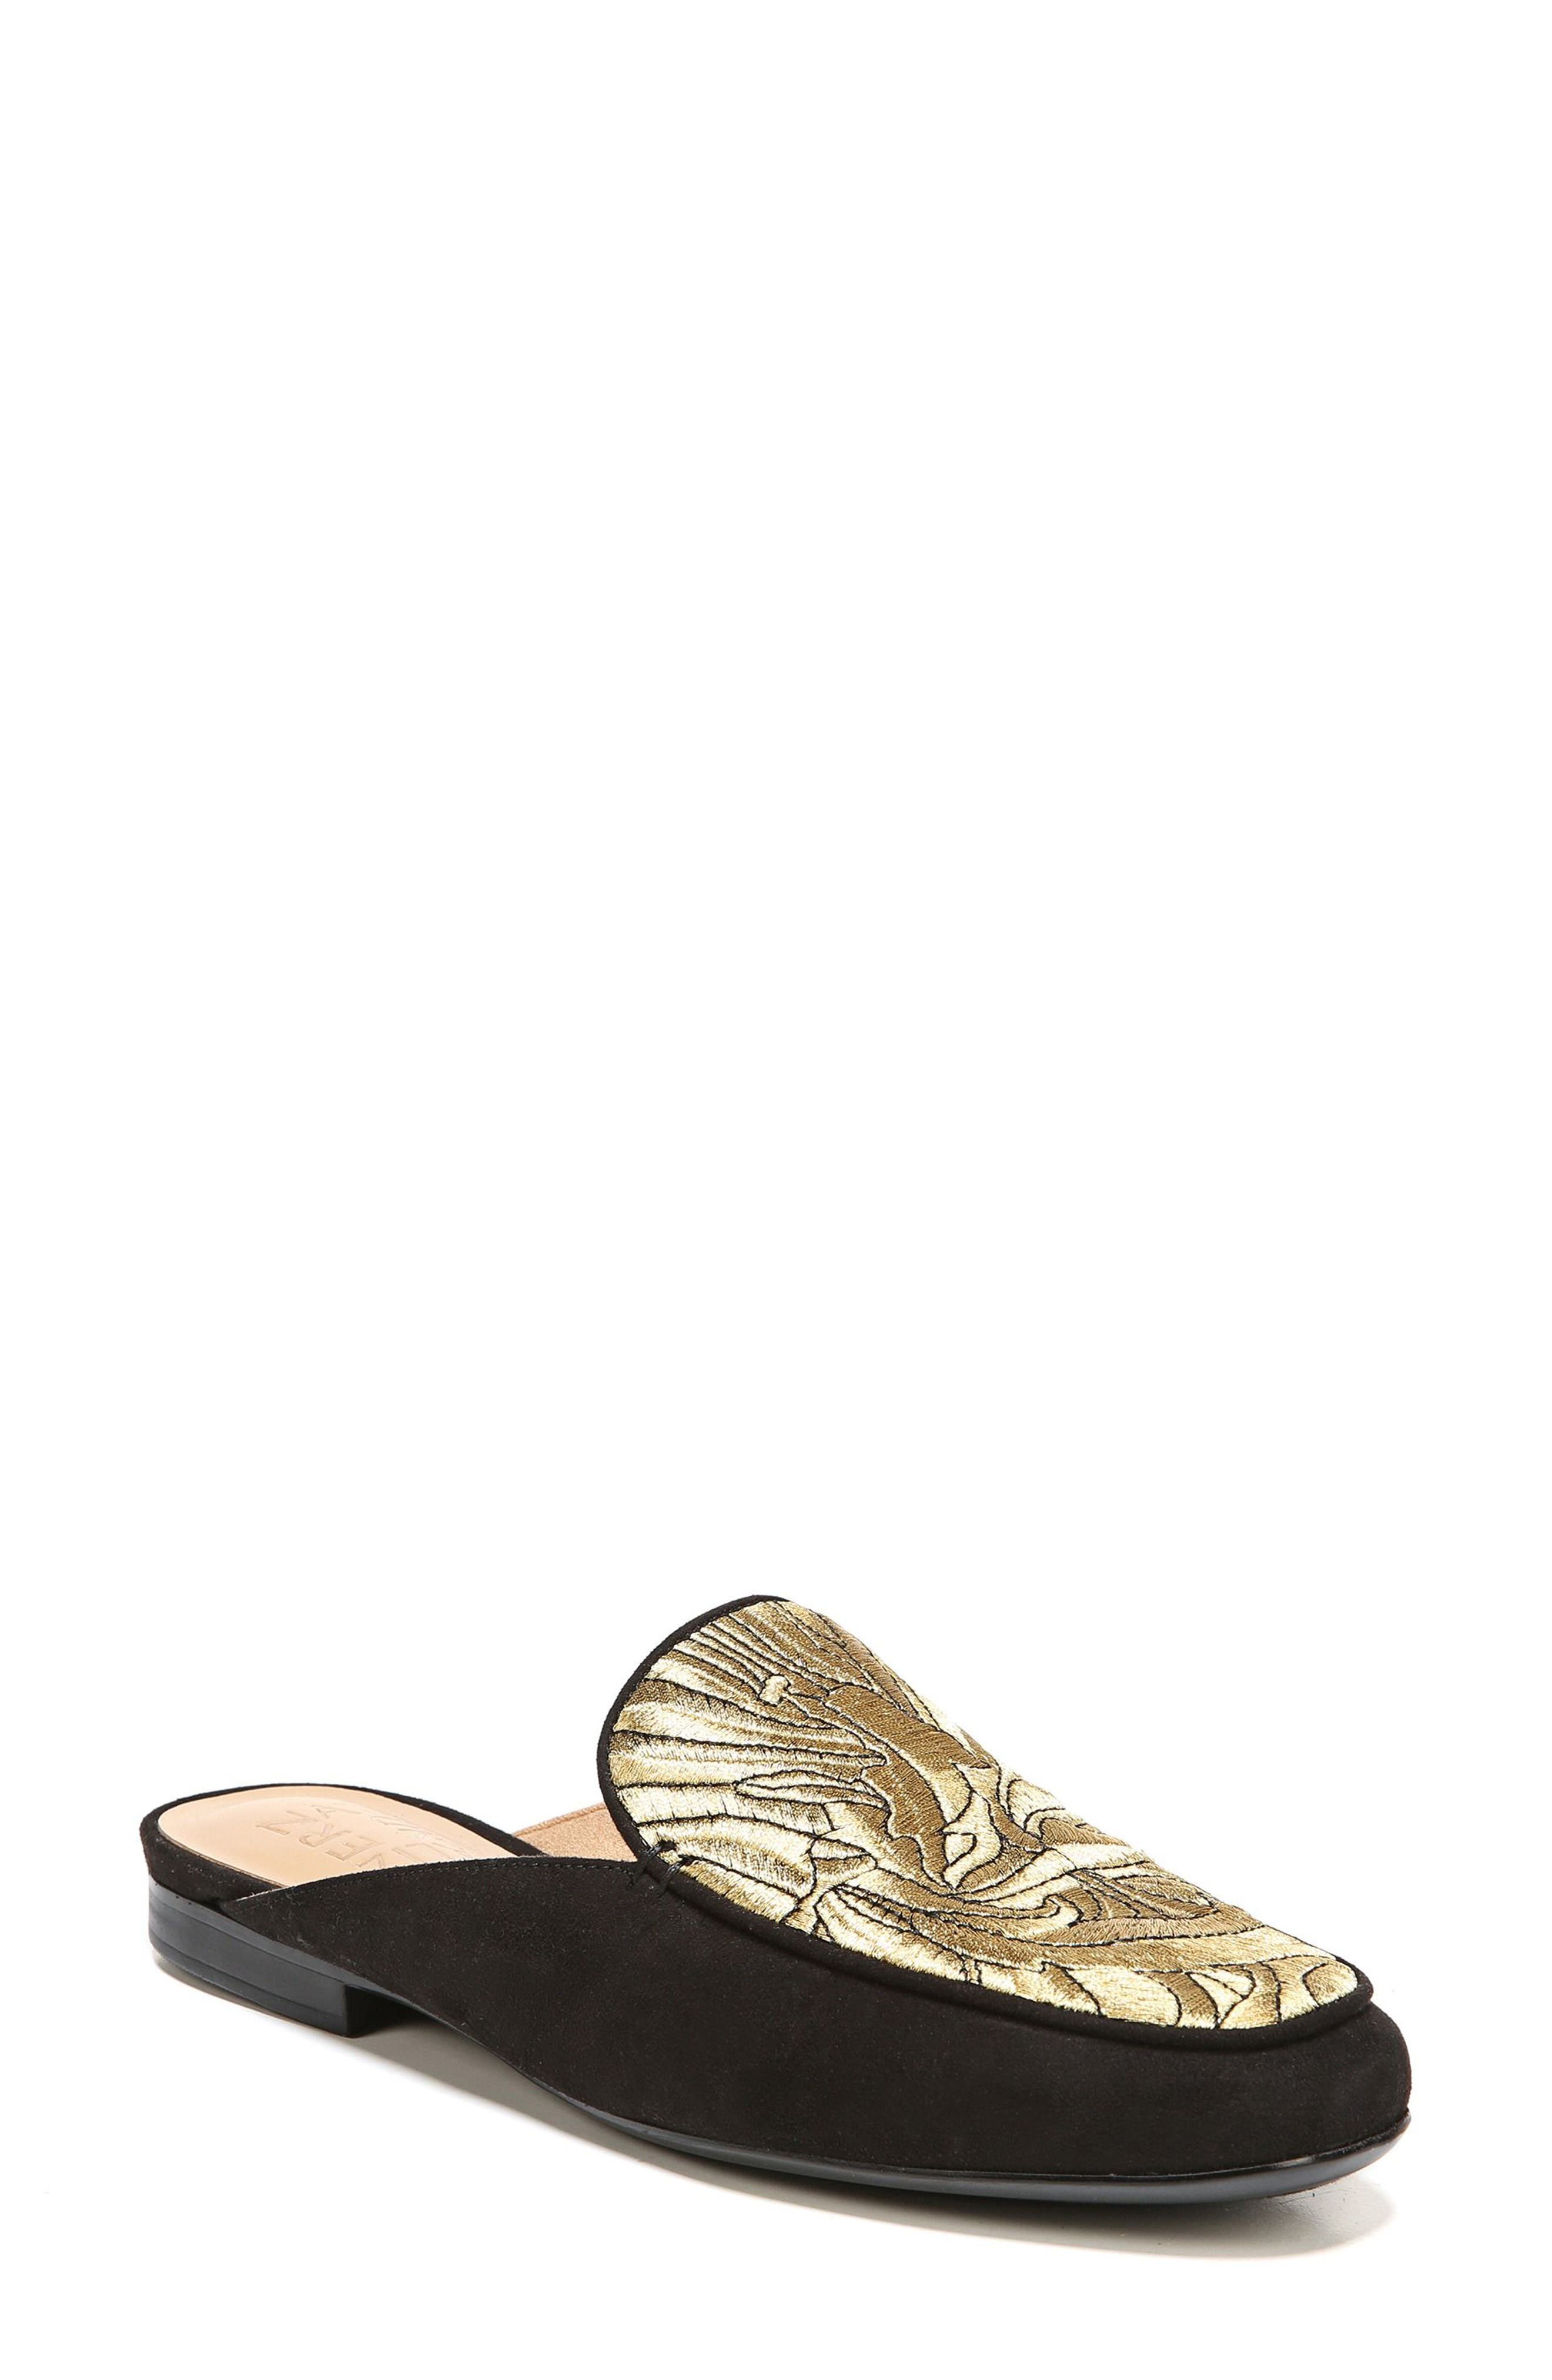 Eden II Embroidered Mule,                             Main thumbnail 1, color,                             Black/ Gold Leather